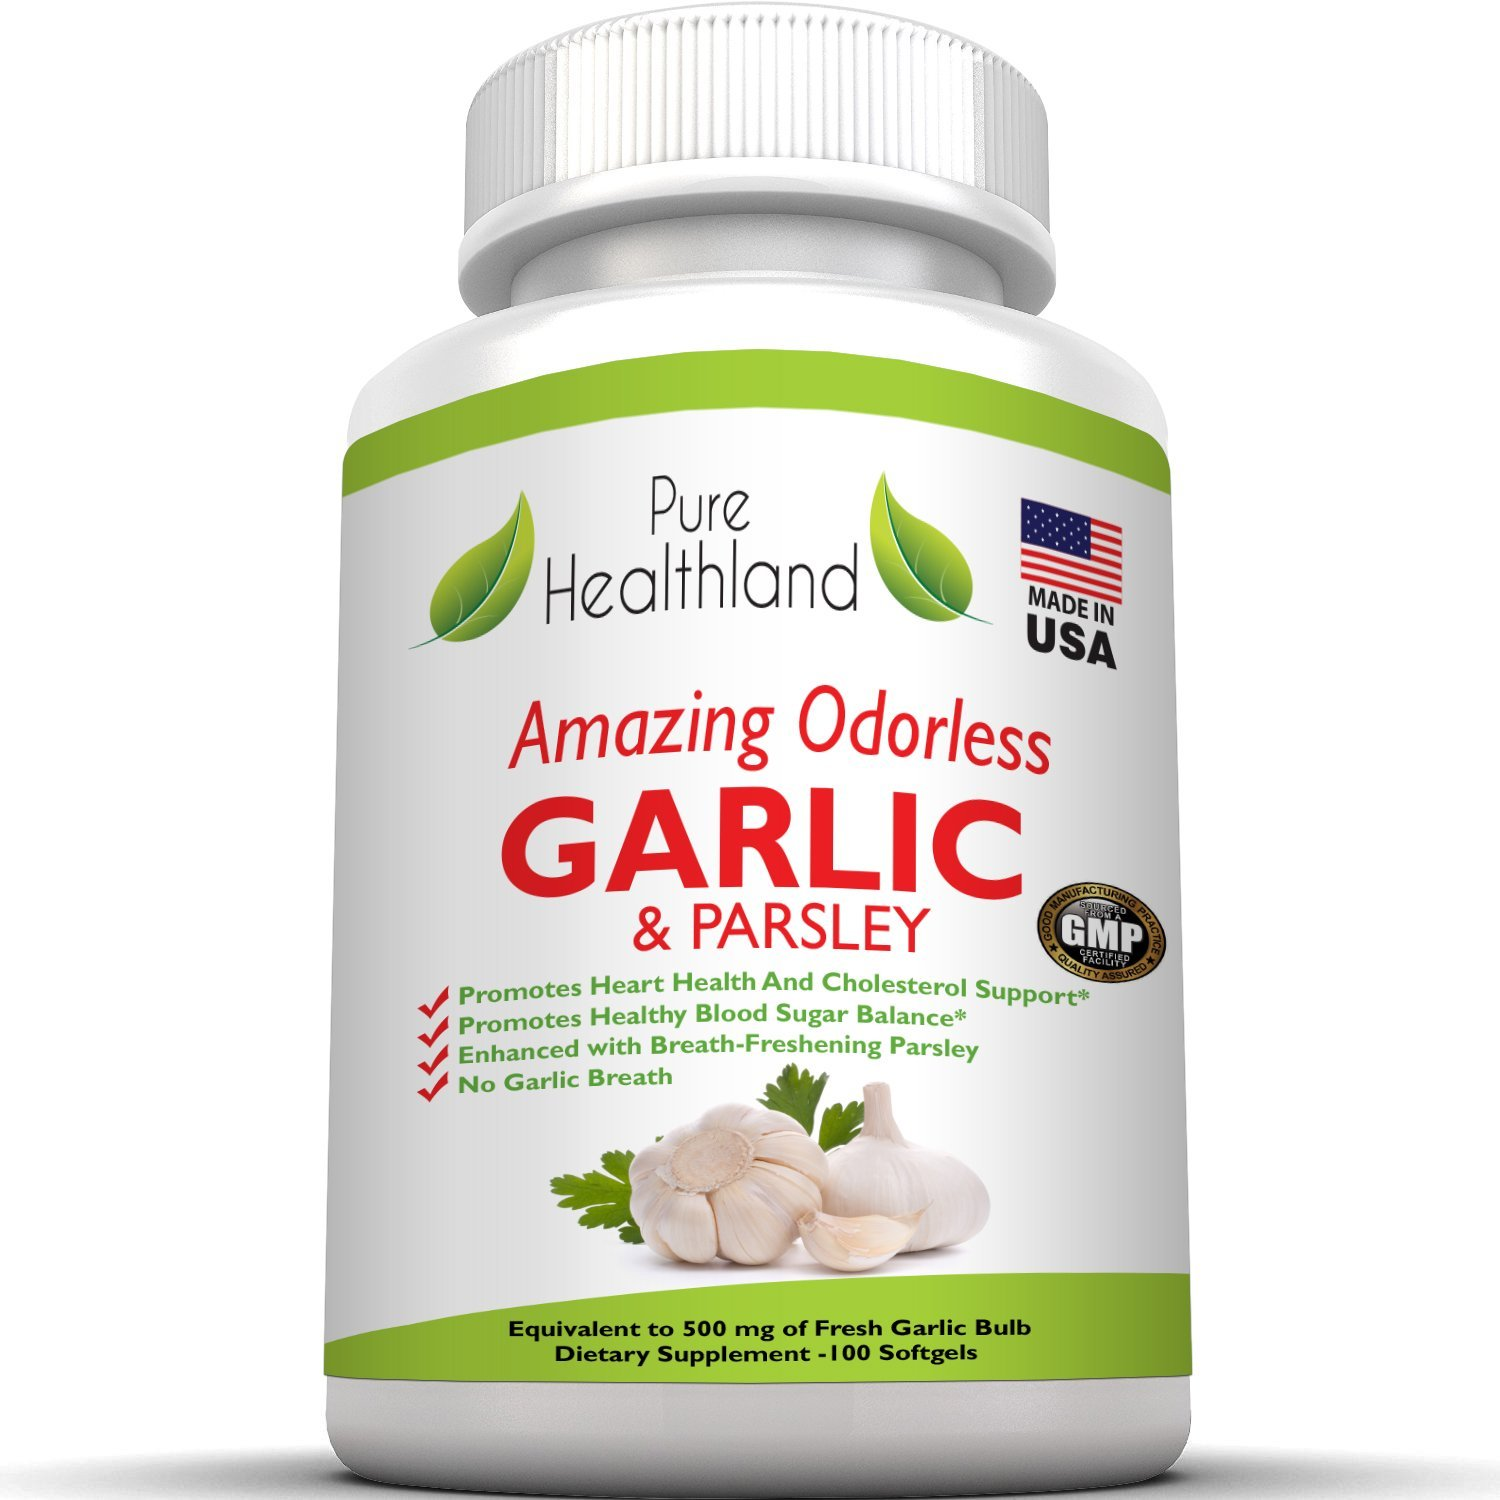 AMAZING ODORLESS Garlic And Parsley Softgels For Men And Women. Equal To 500mg Fresh Garlic Bulbs. Best Garlic Pills. Allium Sativum Helps Lower Cholesterol And Blood Pressure Naturally - 3 Bottles